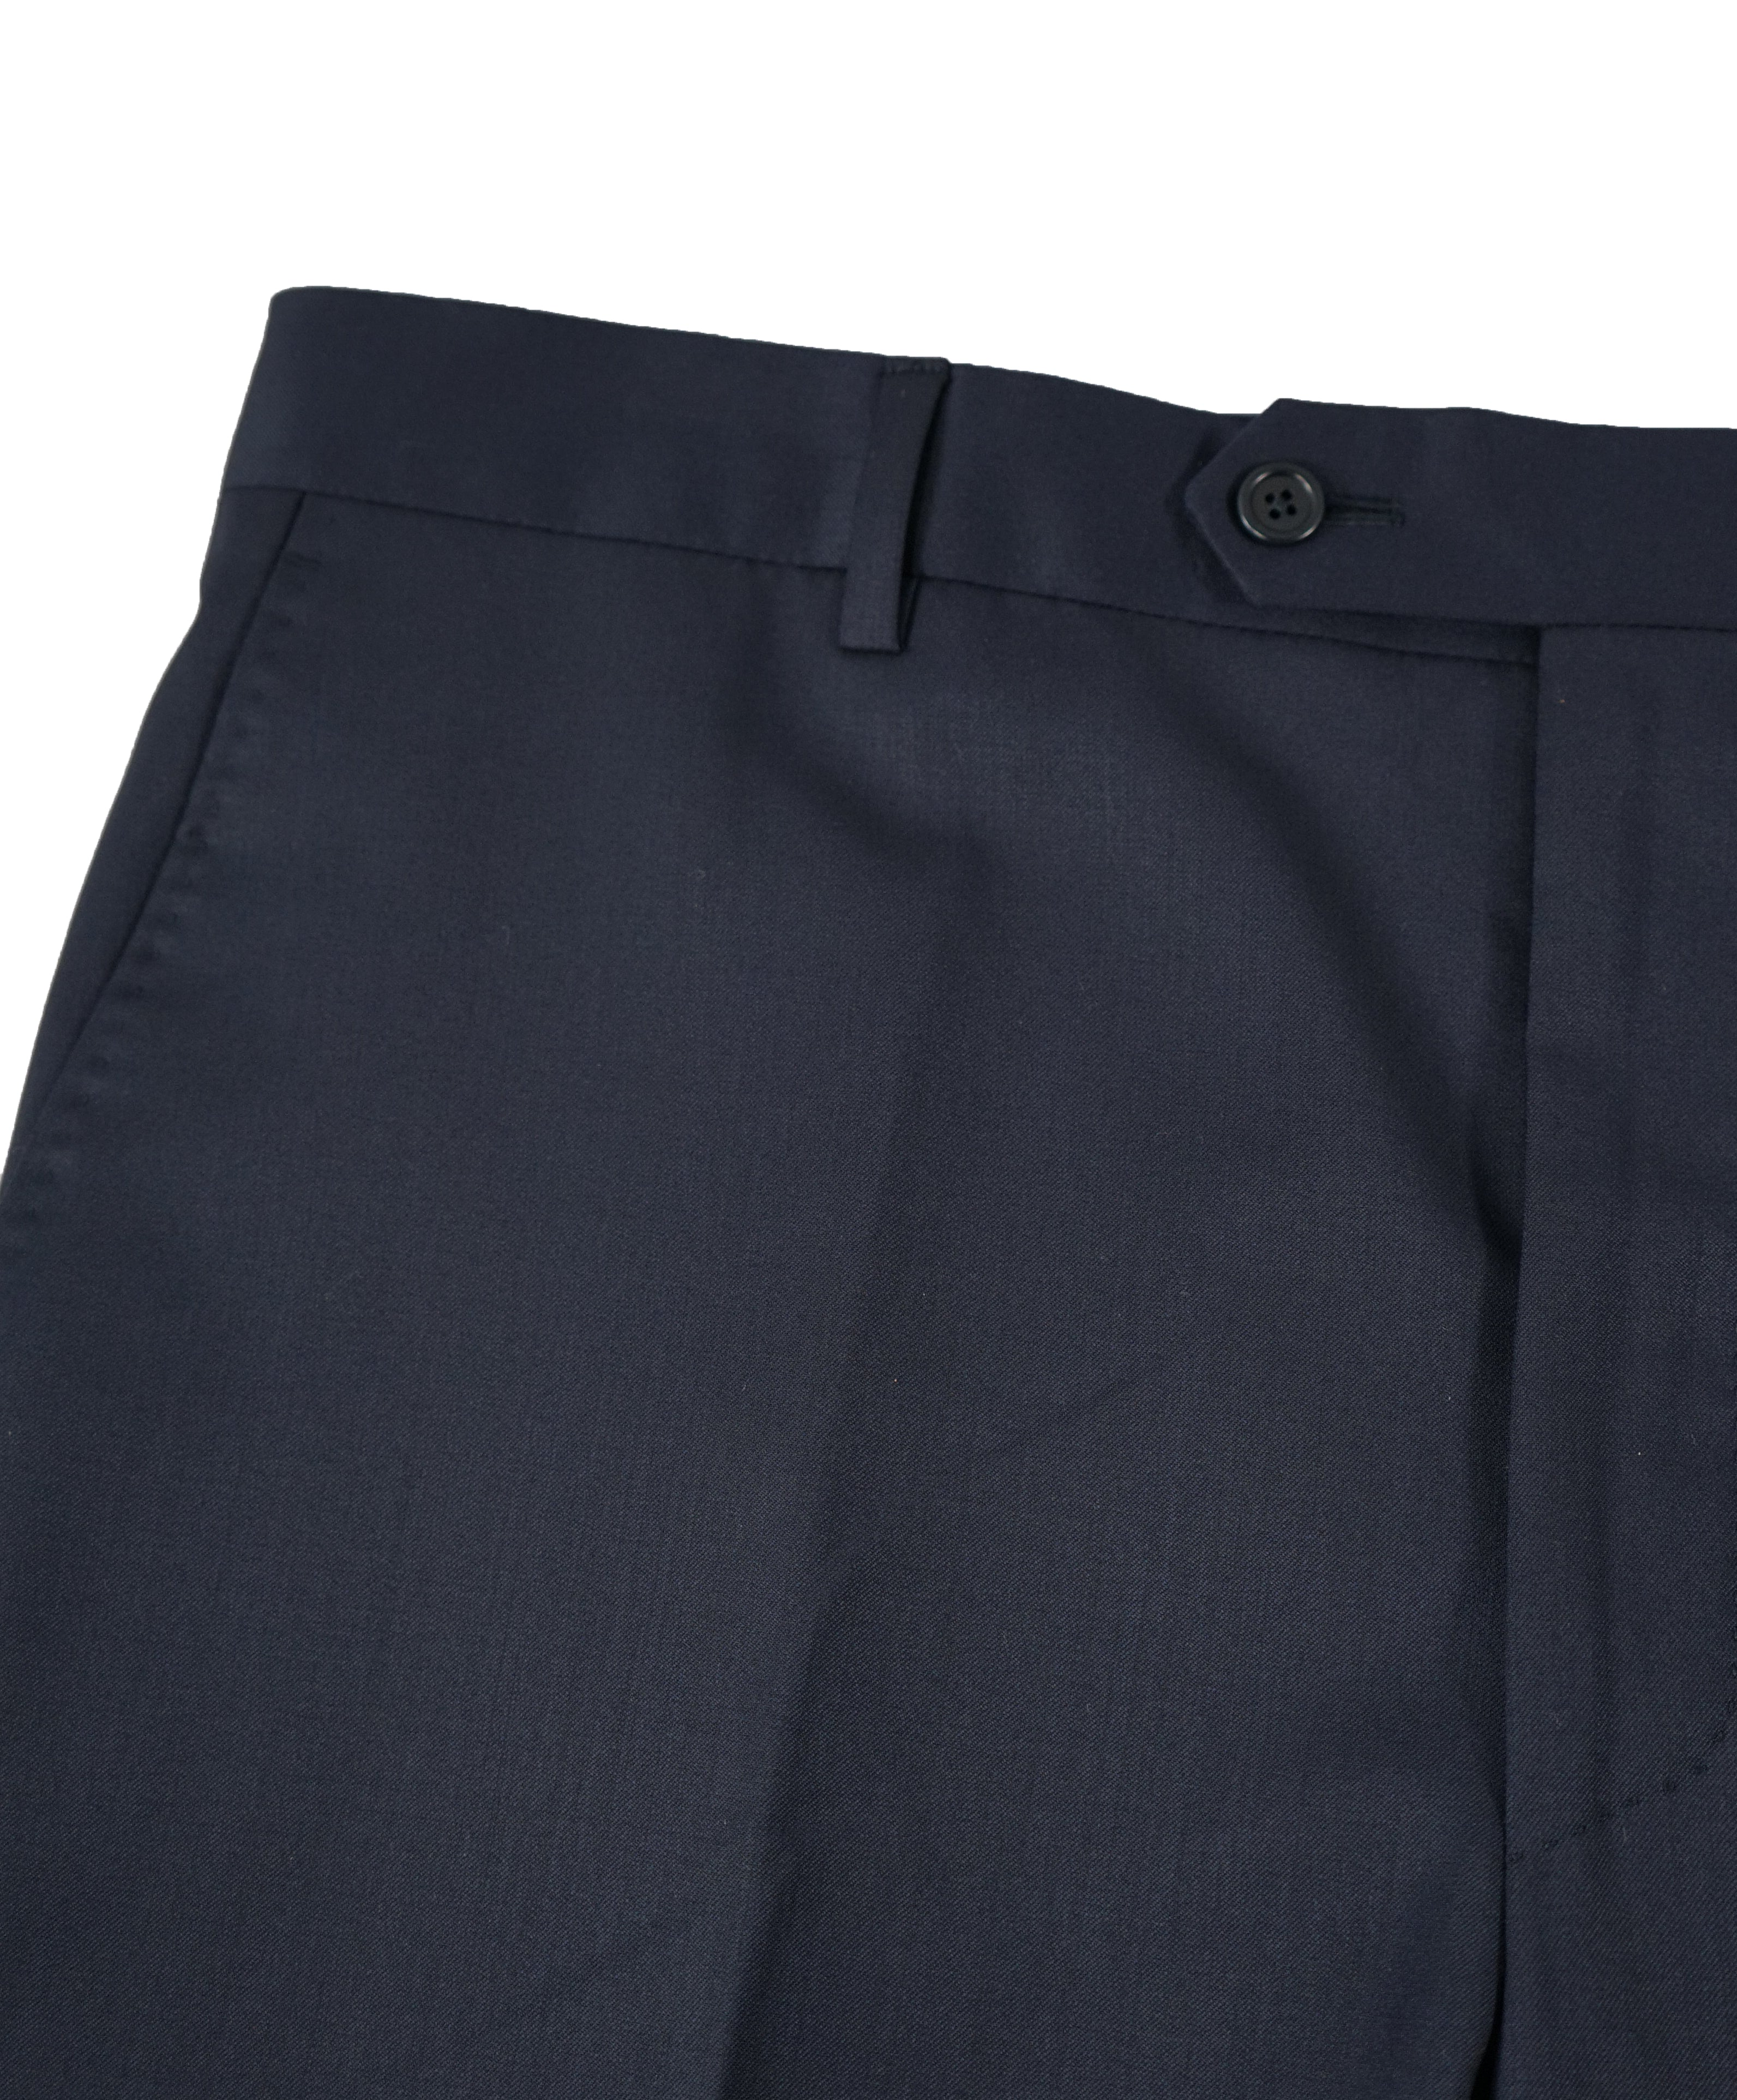 SAKS FIFTH AVE - Navy Wool / Silk MADE IN ITALY Flat Front Dress Pants - 30W